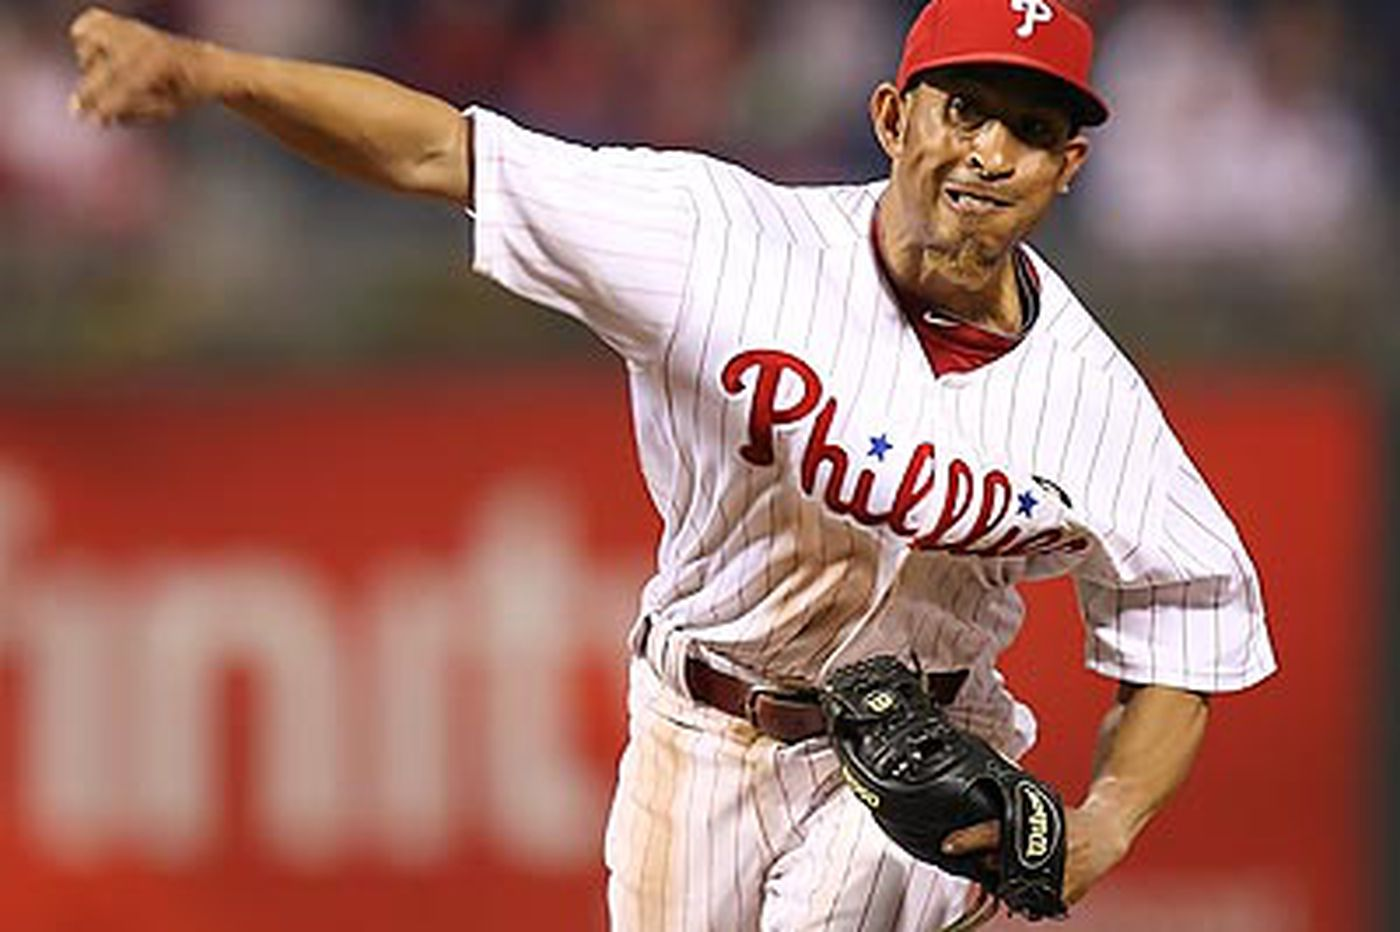 Amazing win for Phils, yes; launching pad, no